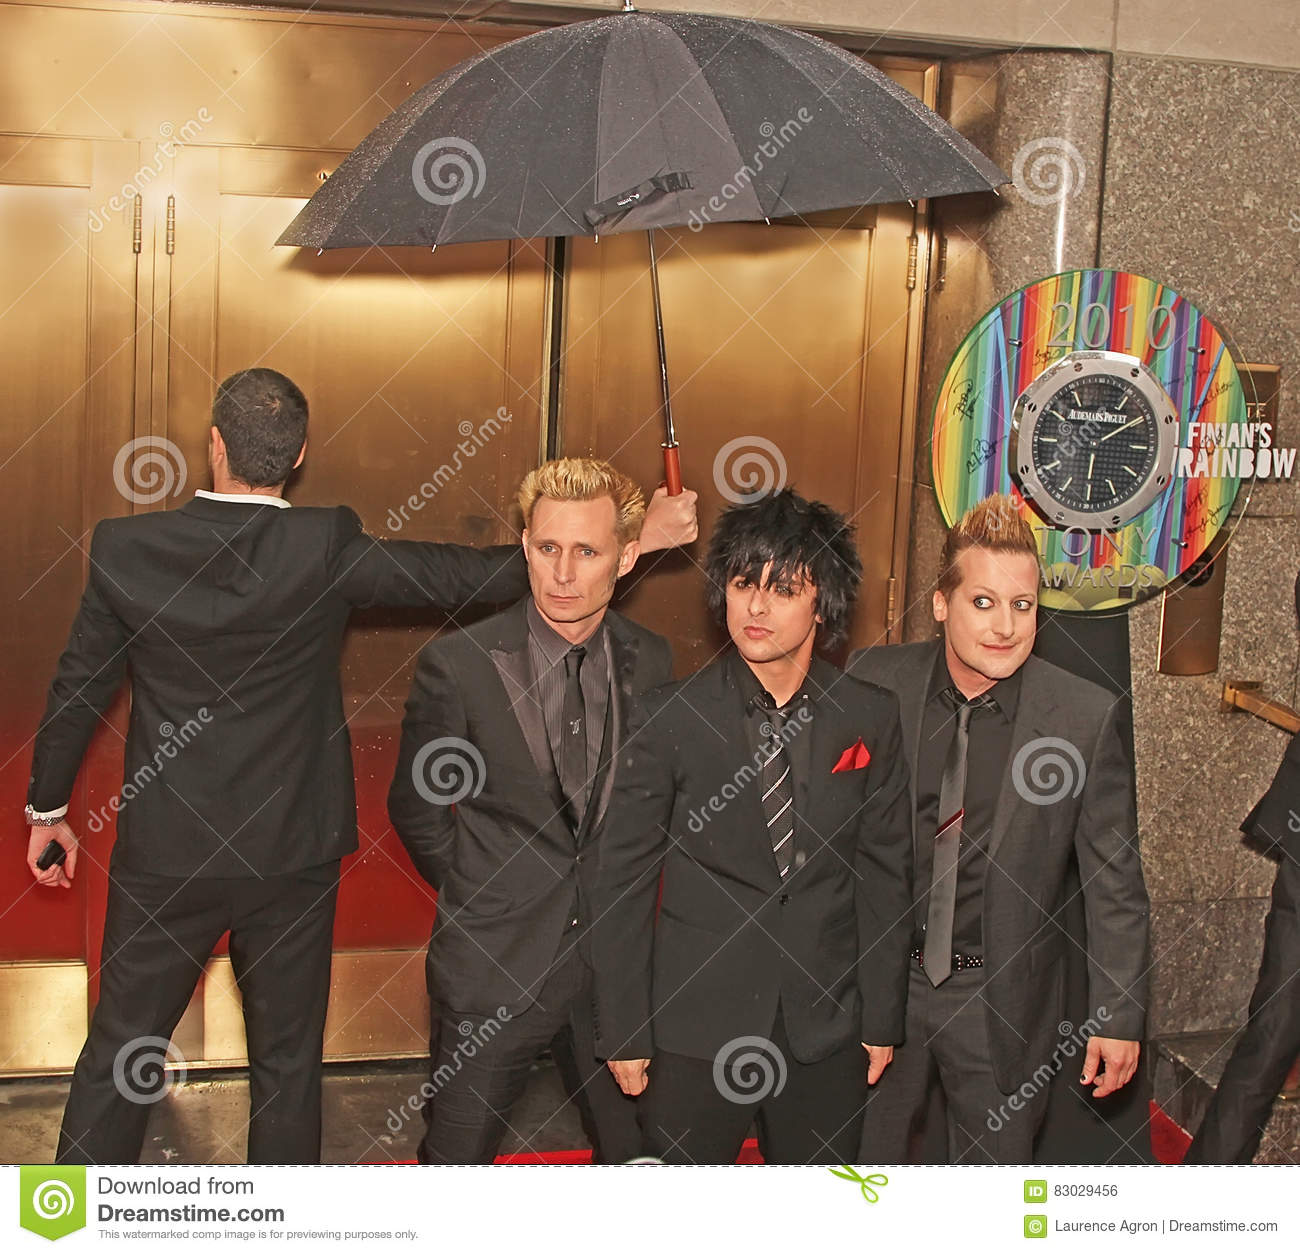 El ` de Green Day del ` llega 64.o Tony Awards anual en 2010